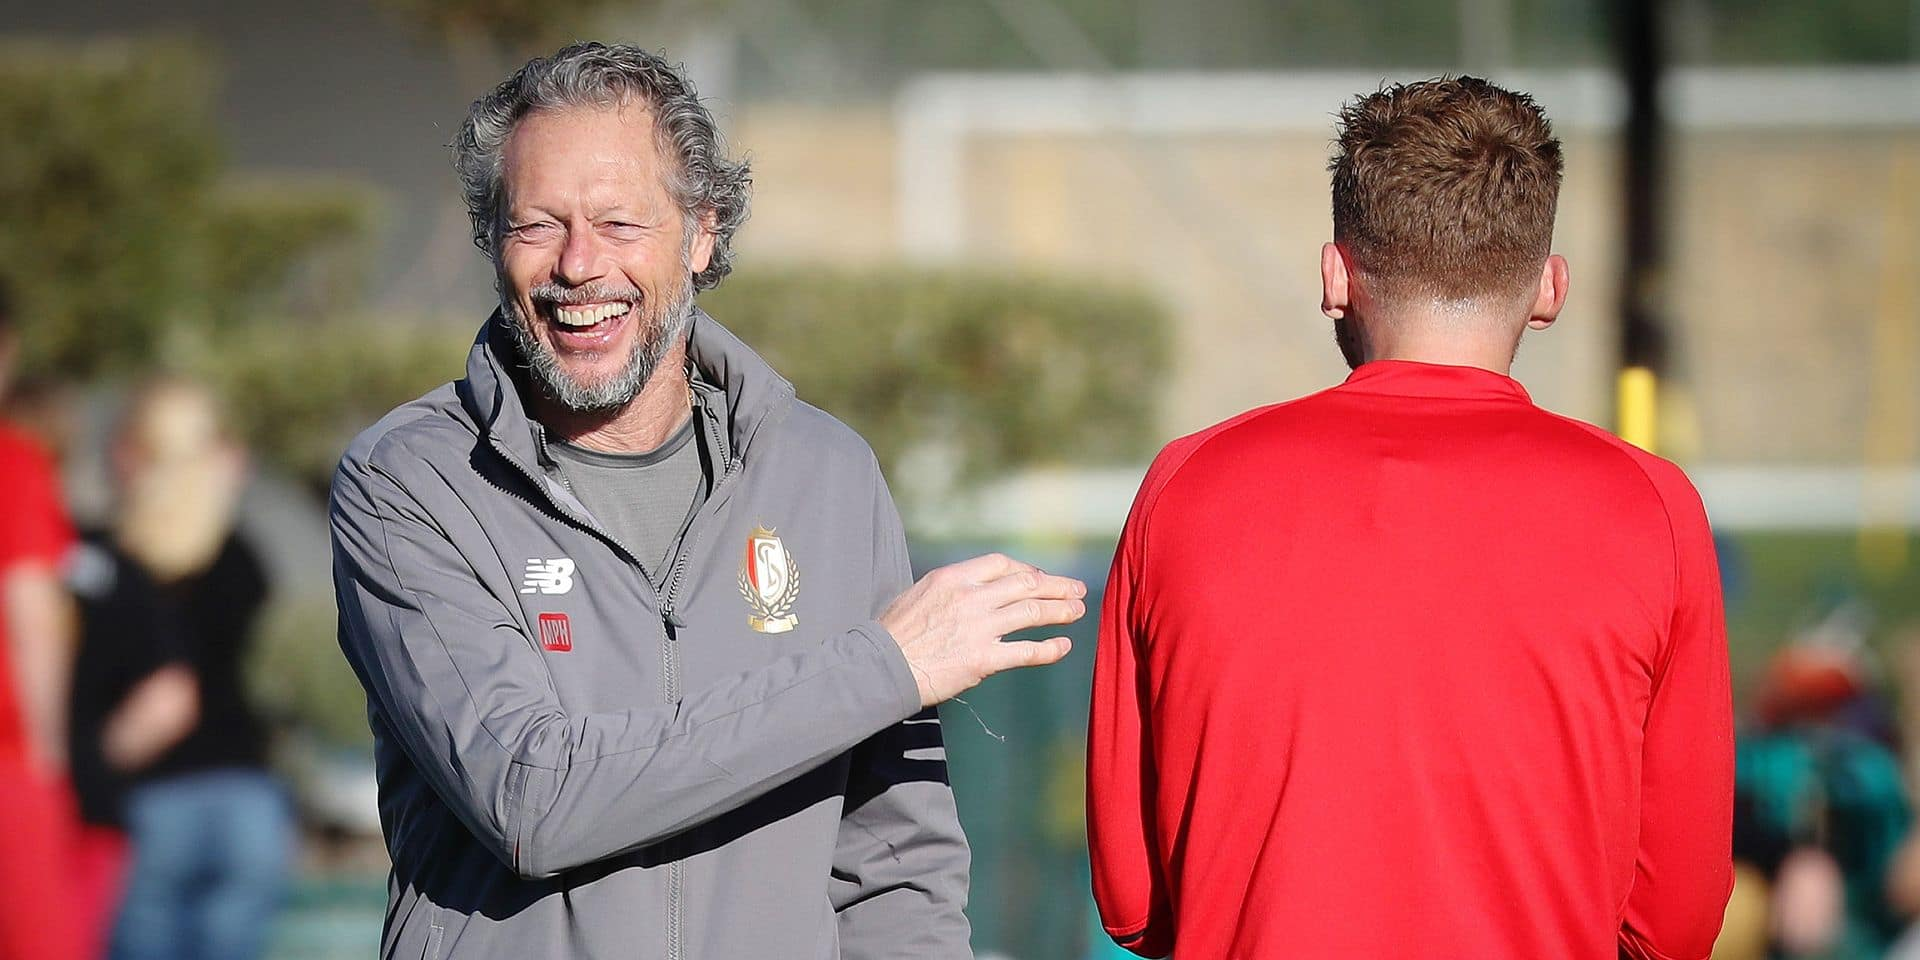 Standard's head coach Michel Preud'homme and Standard's Renaud Emond pictured during the sixth day of the winter training camp of Belgian first division soccer team Standard de Liege, in Marbella, Spain, Wednesday 09 January 2019. BELGA PHOTO VIRGINIE LEFOUR